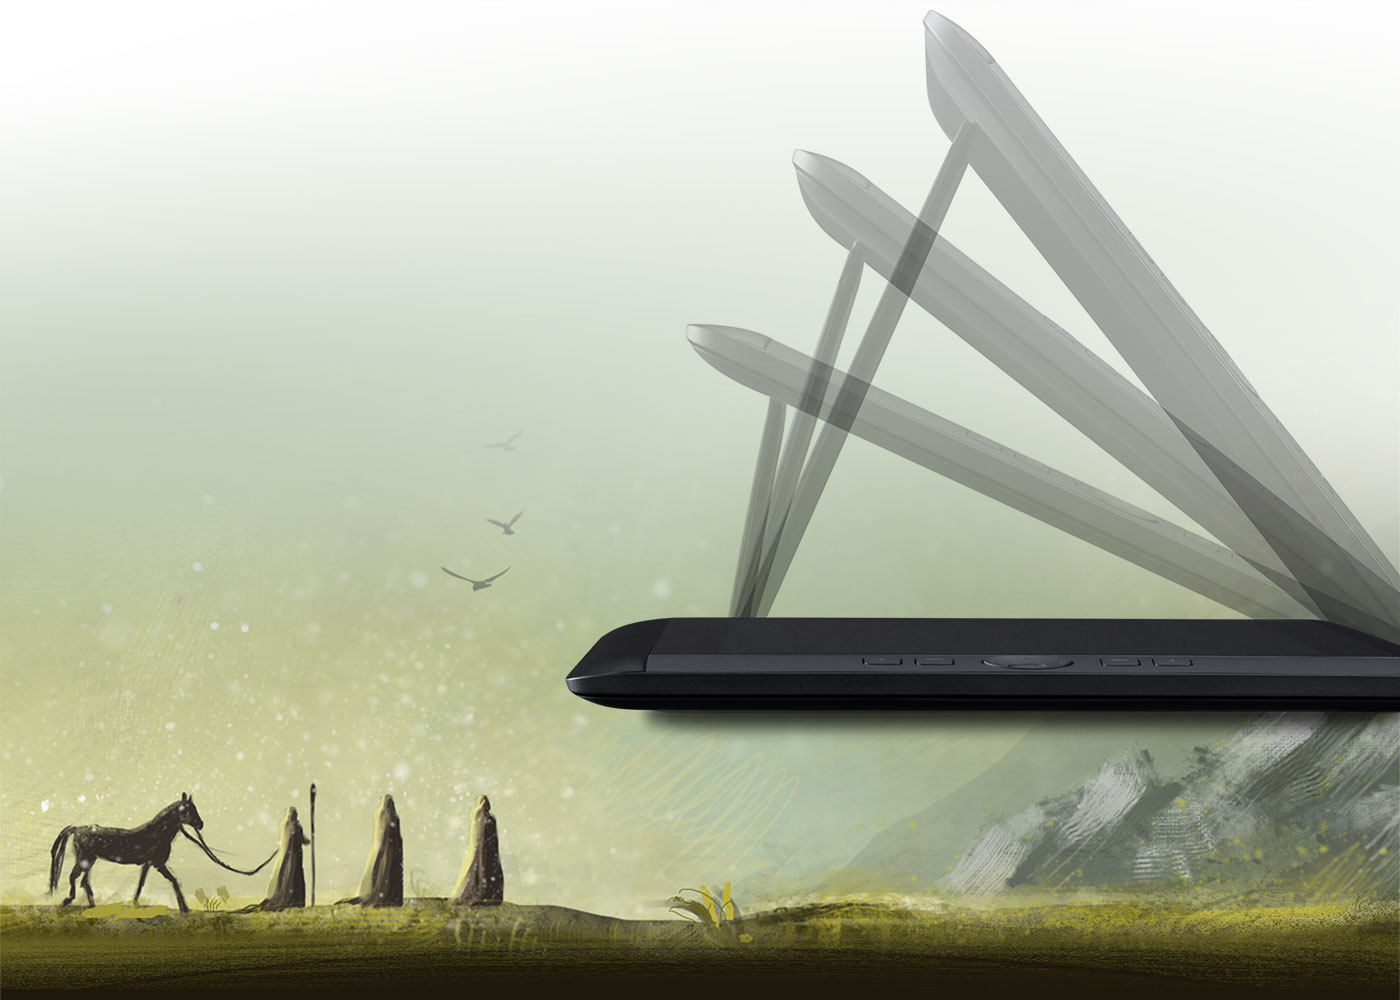 Cintiq 13 HD Touch Graphic Pen Tablet for Drawing | Wacom Easy Designs To Draw On Your Hand With Pen